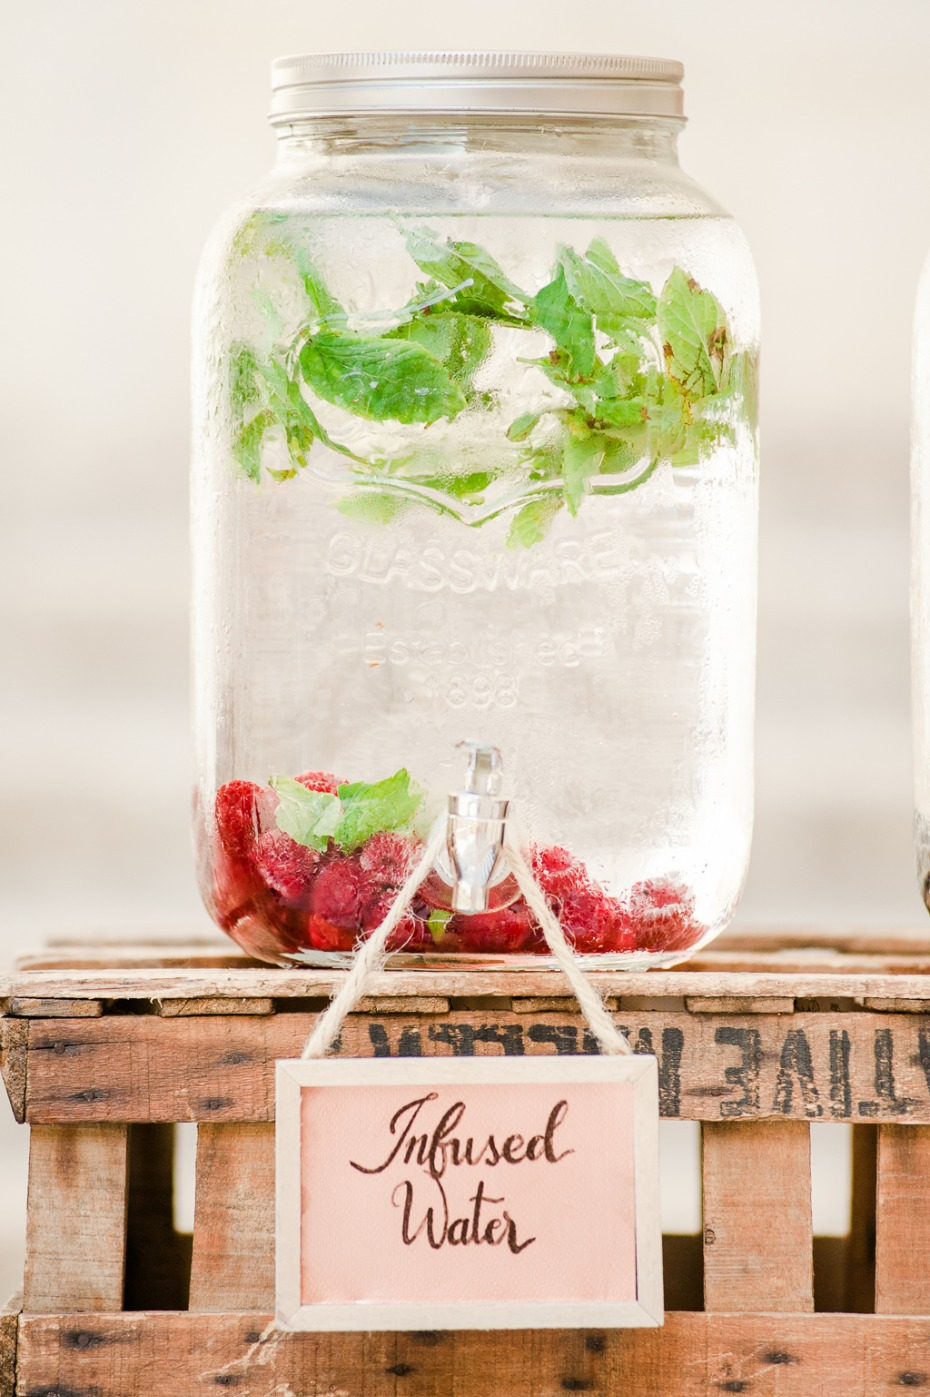 Infused water for a wedding